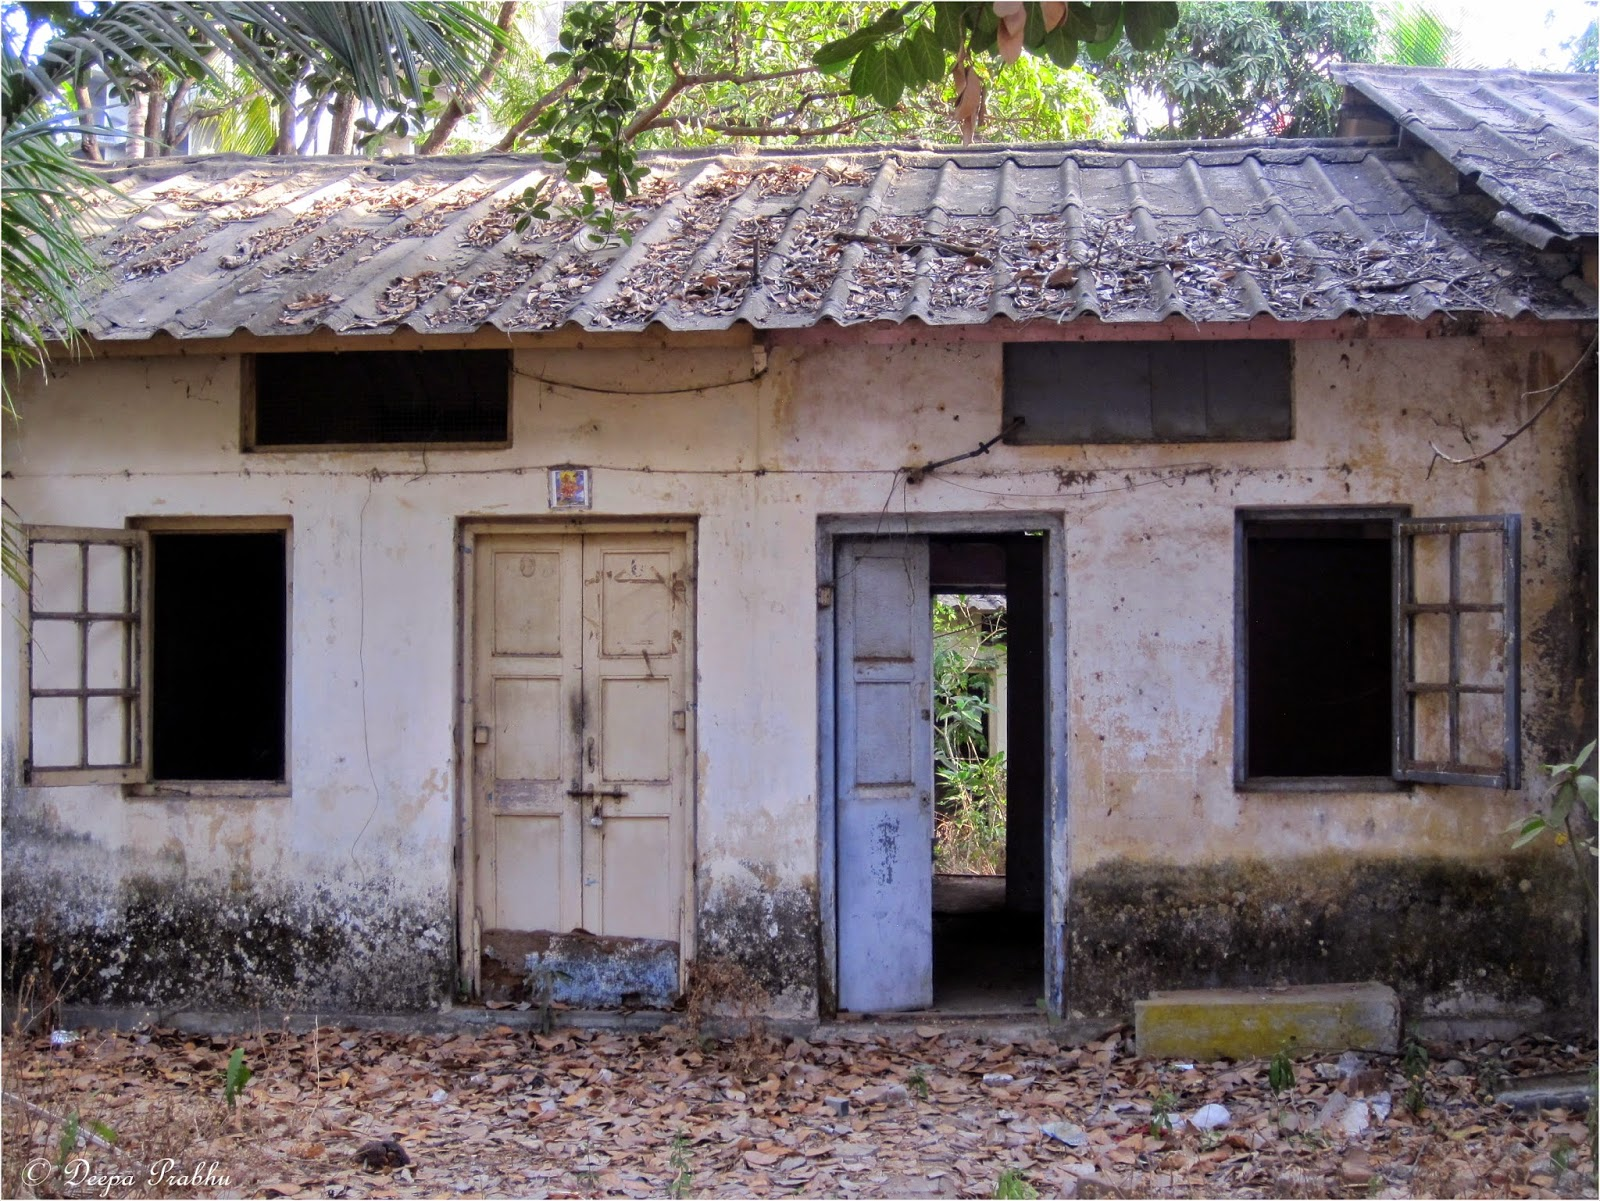 Thursday Challenge - ABANDONED (Buildings, Cars, Things in